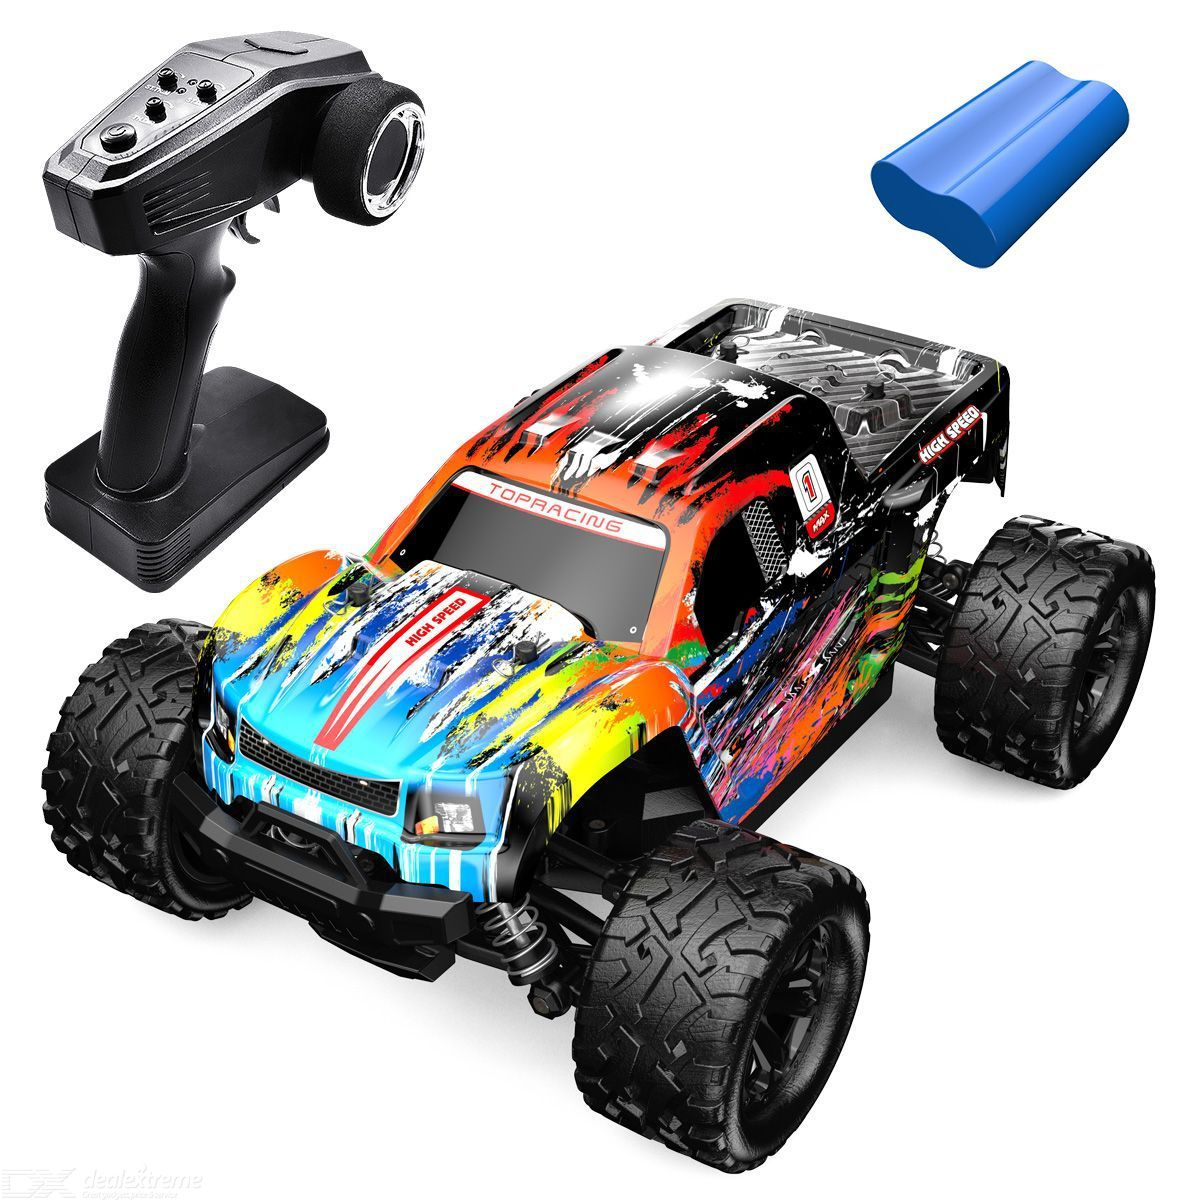 Dm-1811 1/18 rc car 2.4g remote control anti-fall anti-collision with tpr rubber vacuum tires (single electric version)